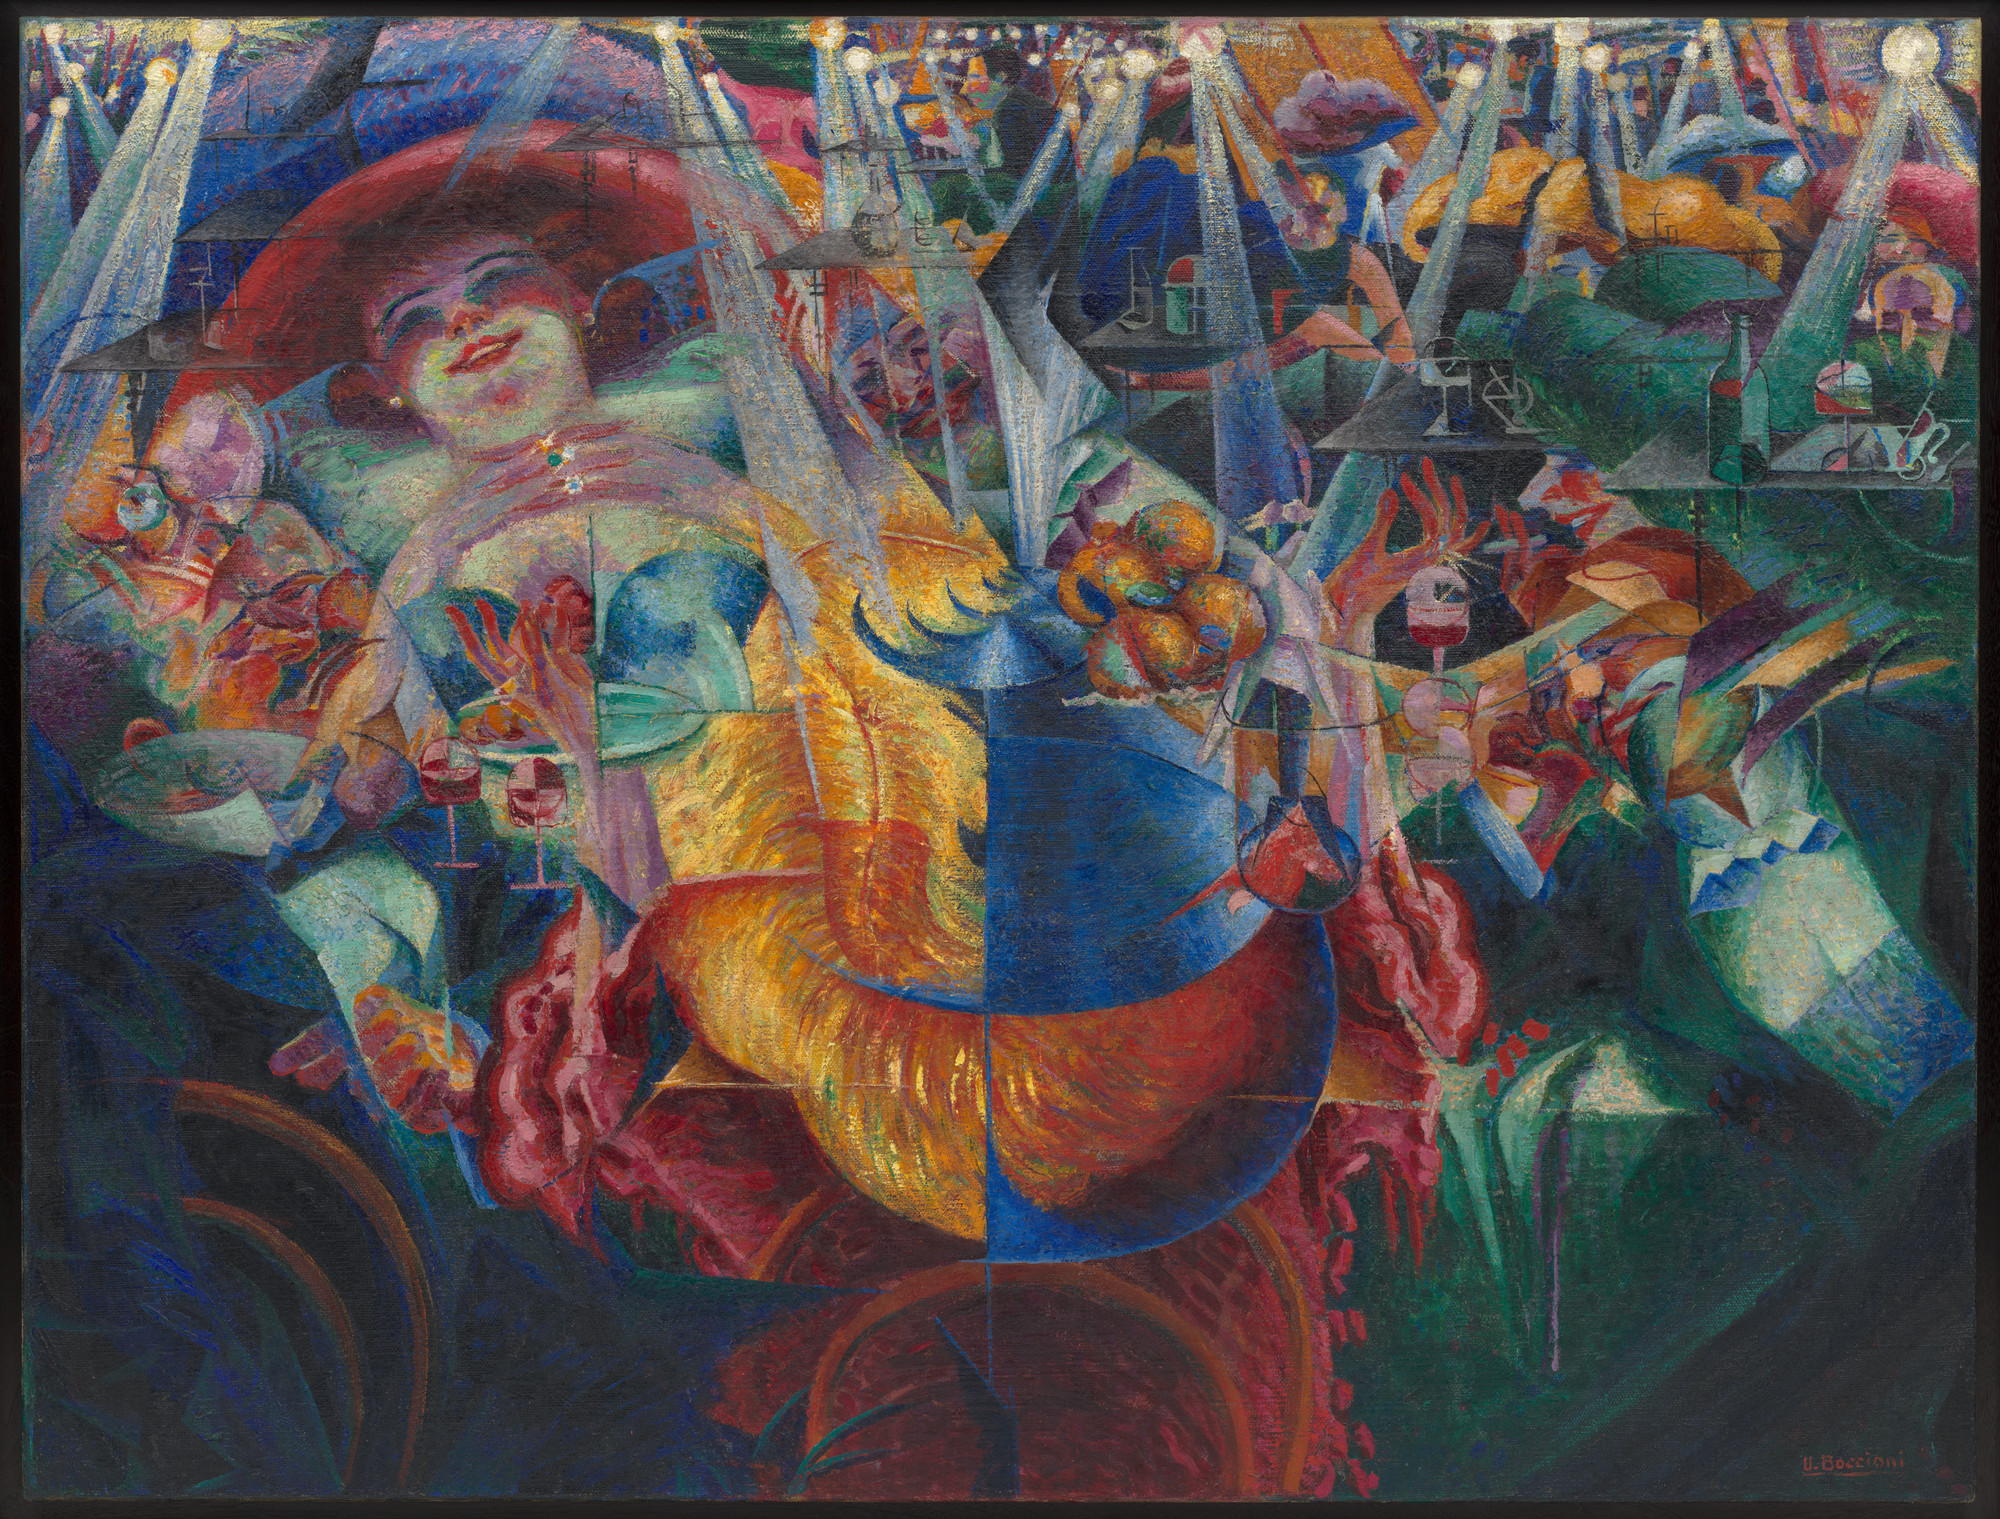 Umberto Boccioni. The Laugh. 1911